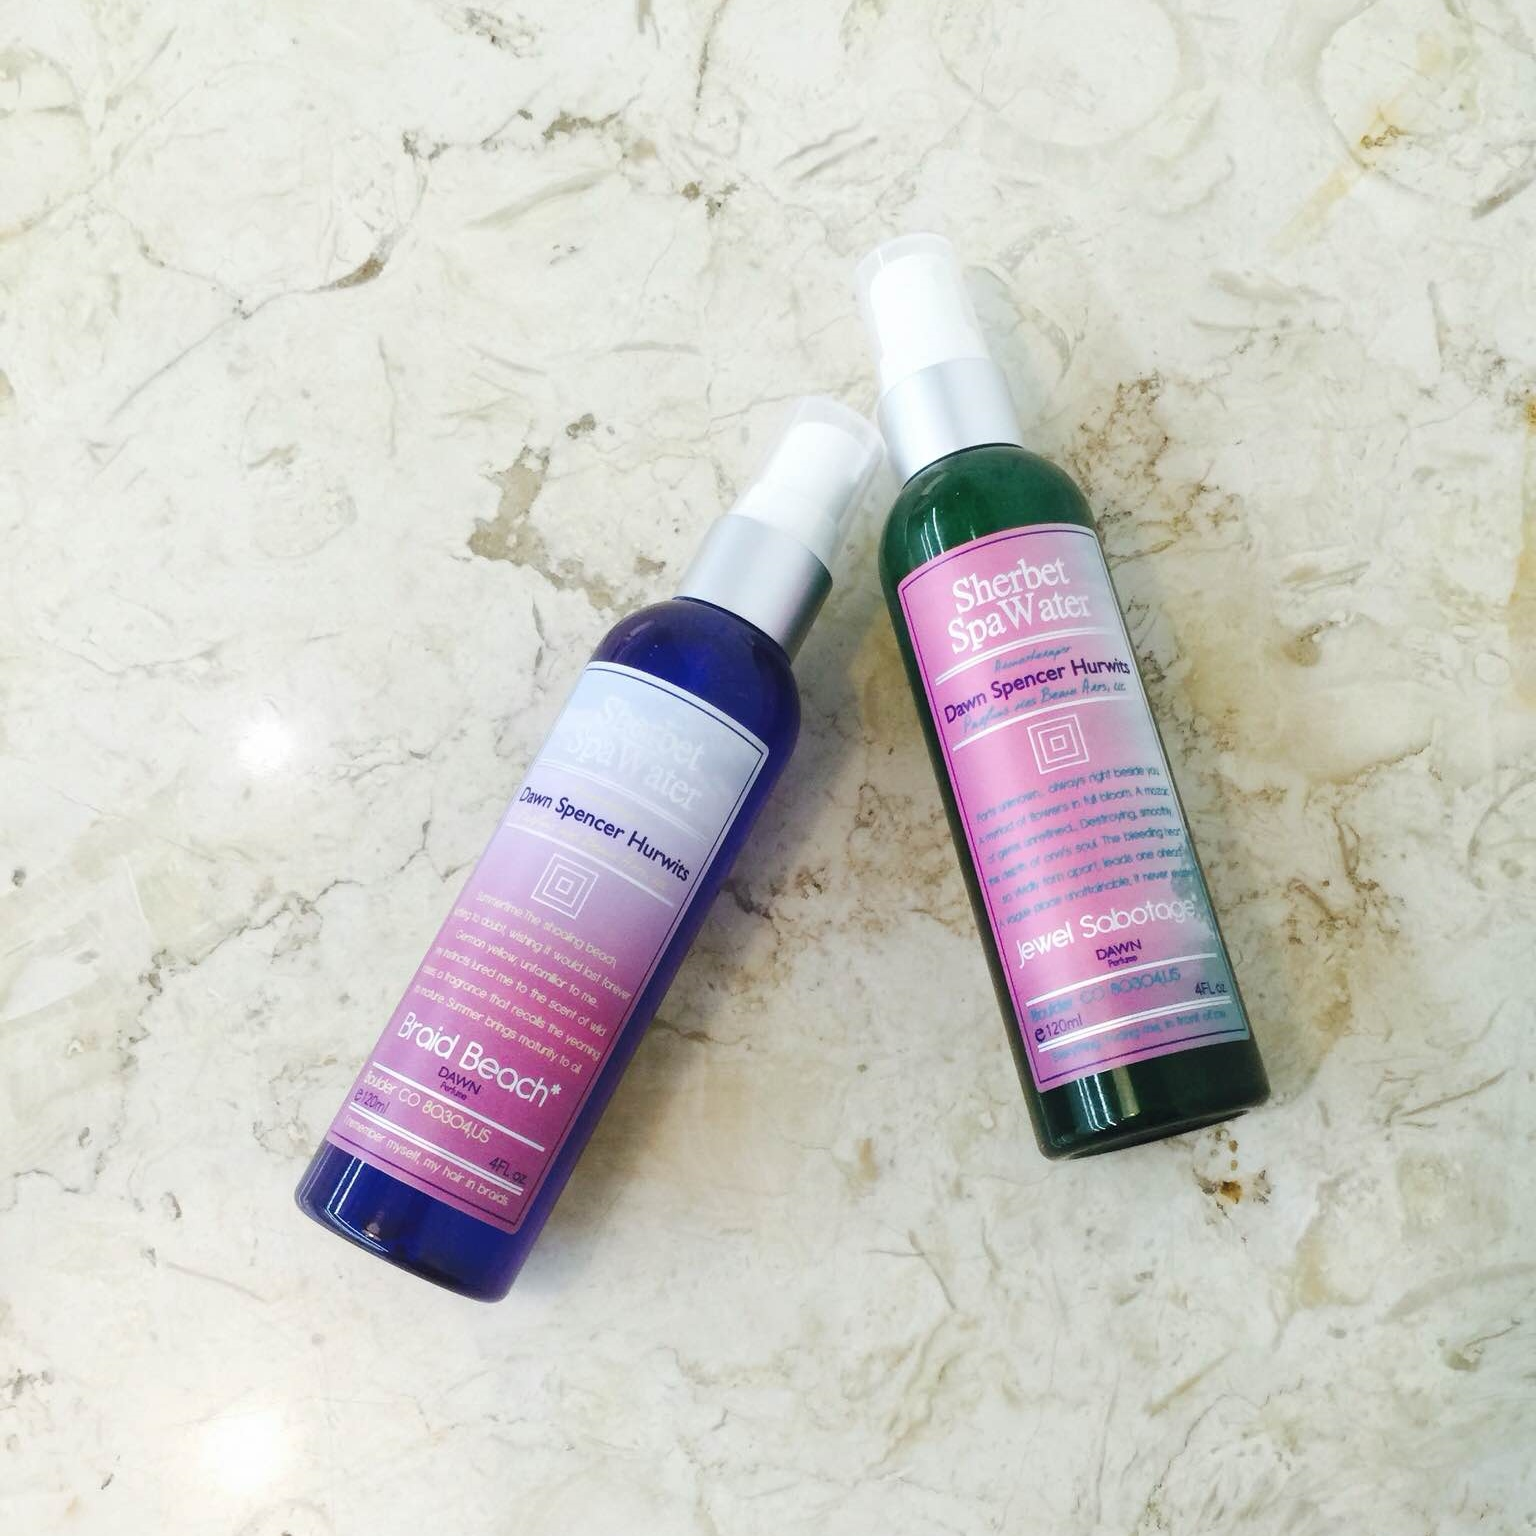 DAWN Perfume「BODY LOTION」new release